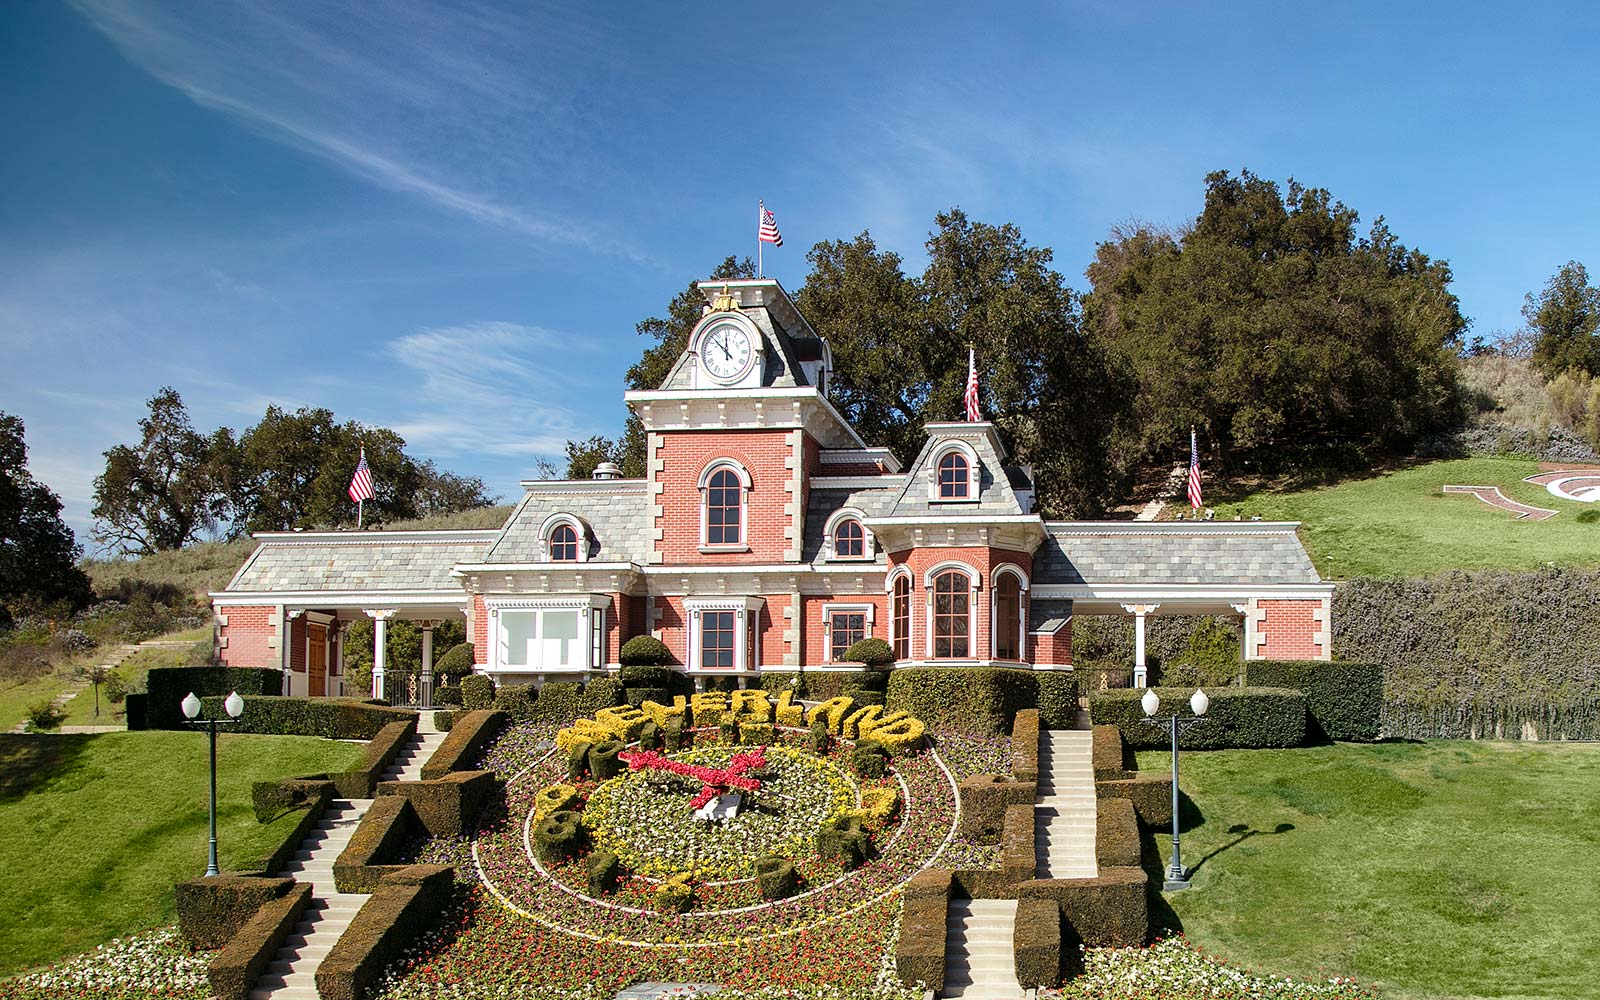 Neverland back on the market